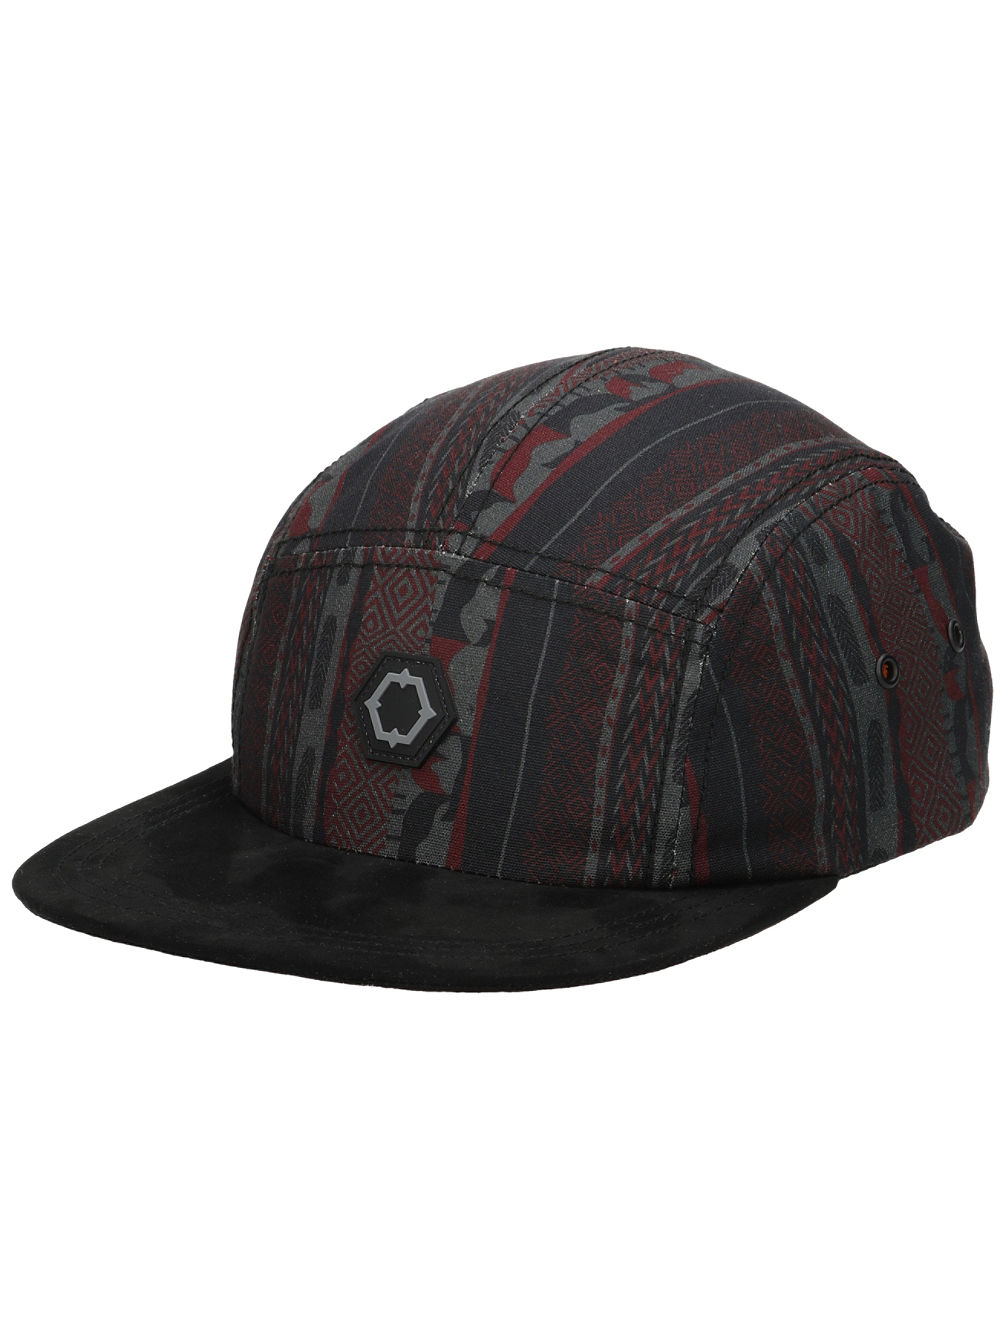 d4f9b240dcfe4 Buy Empyre Notorious Retro 5 Panel Cap online at Blue Tomato